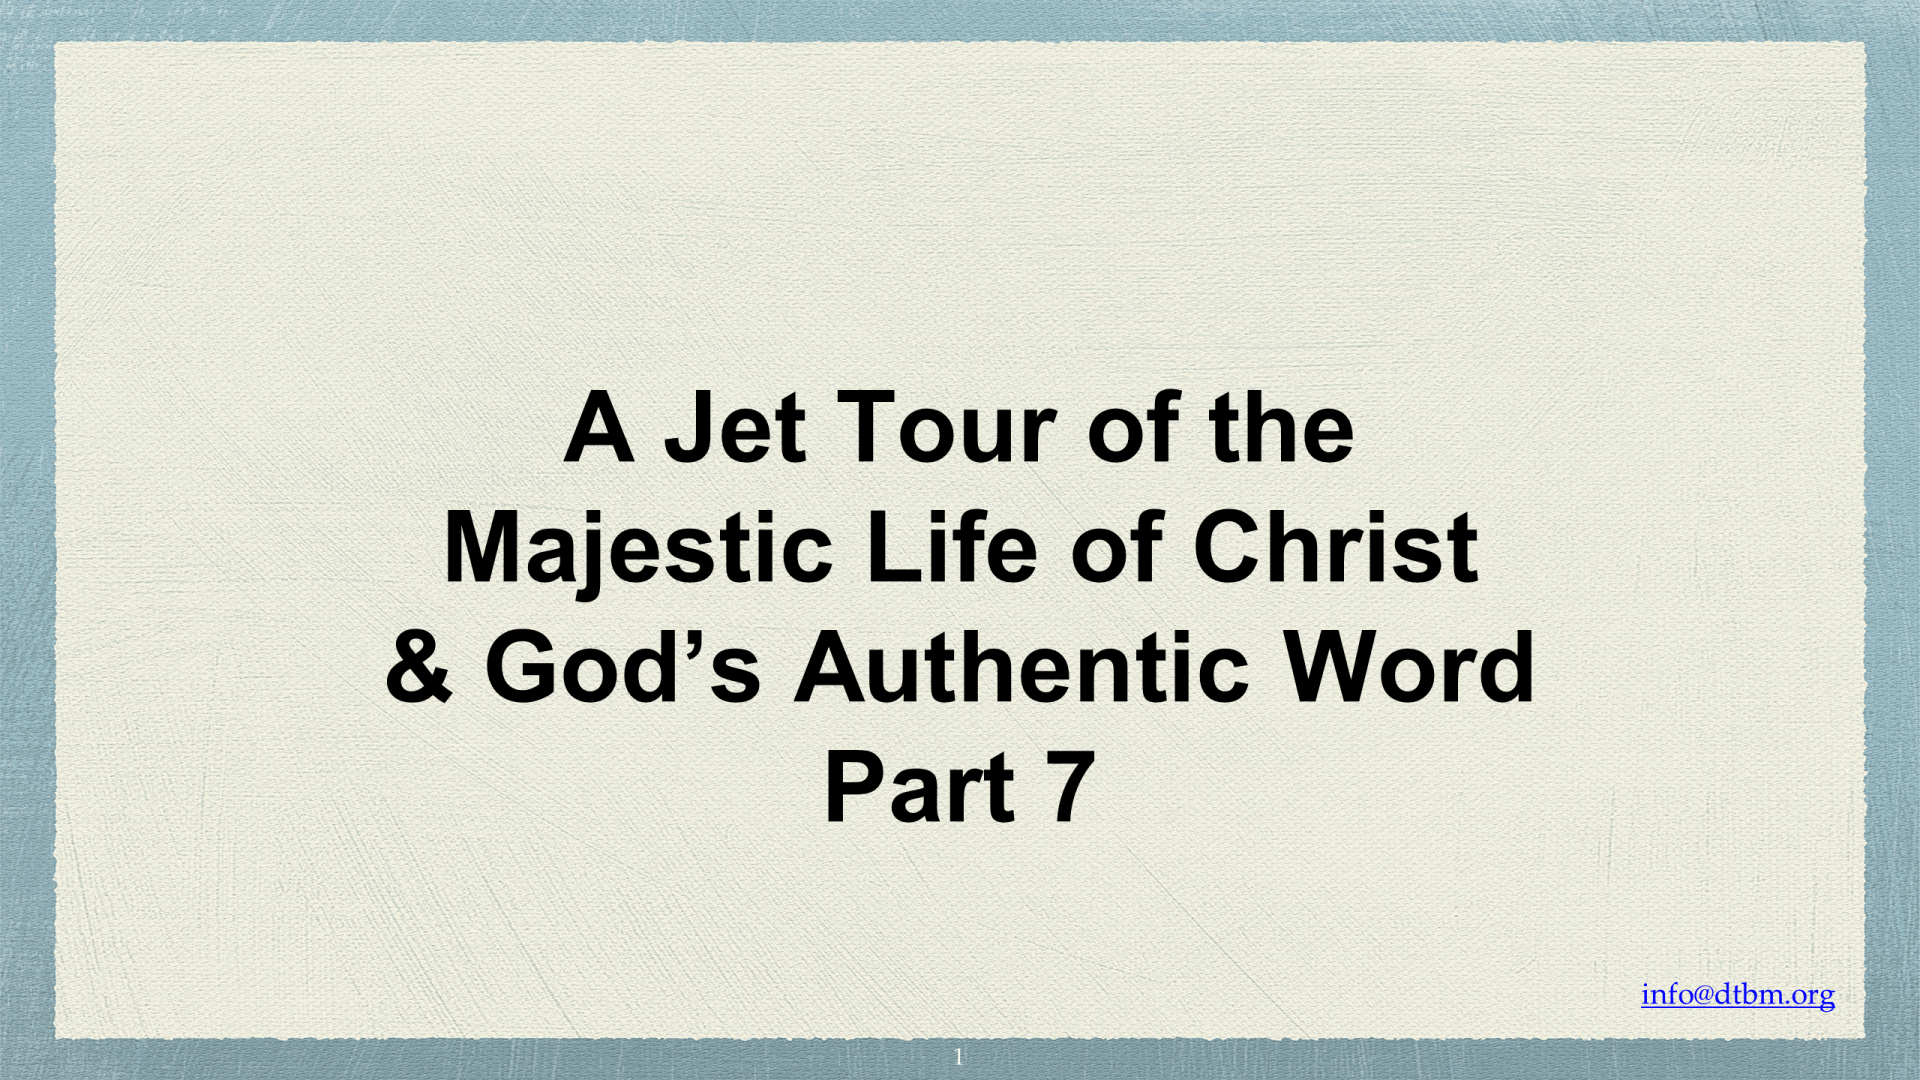 JET-08 - A Jet Tour Of The Majestic Life Of Christ & God's Authentic Word (1)